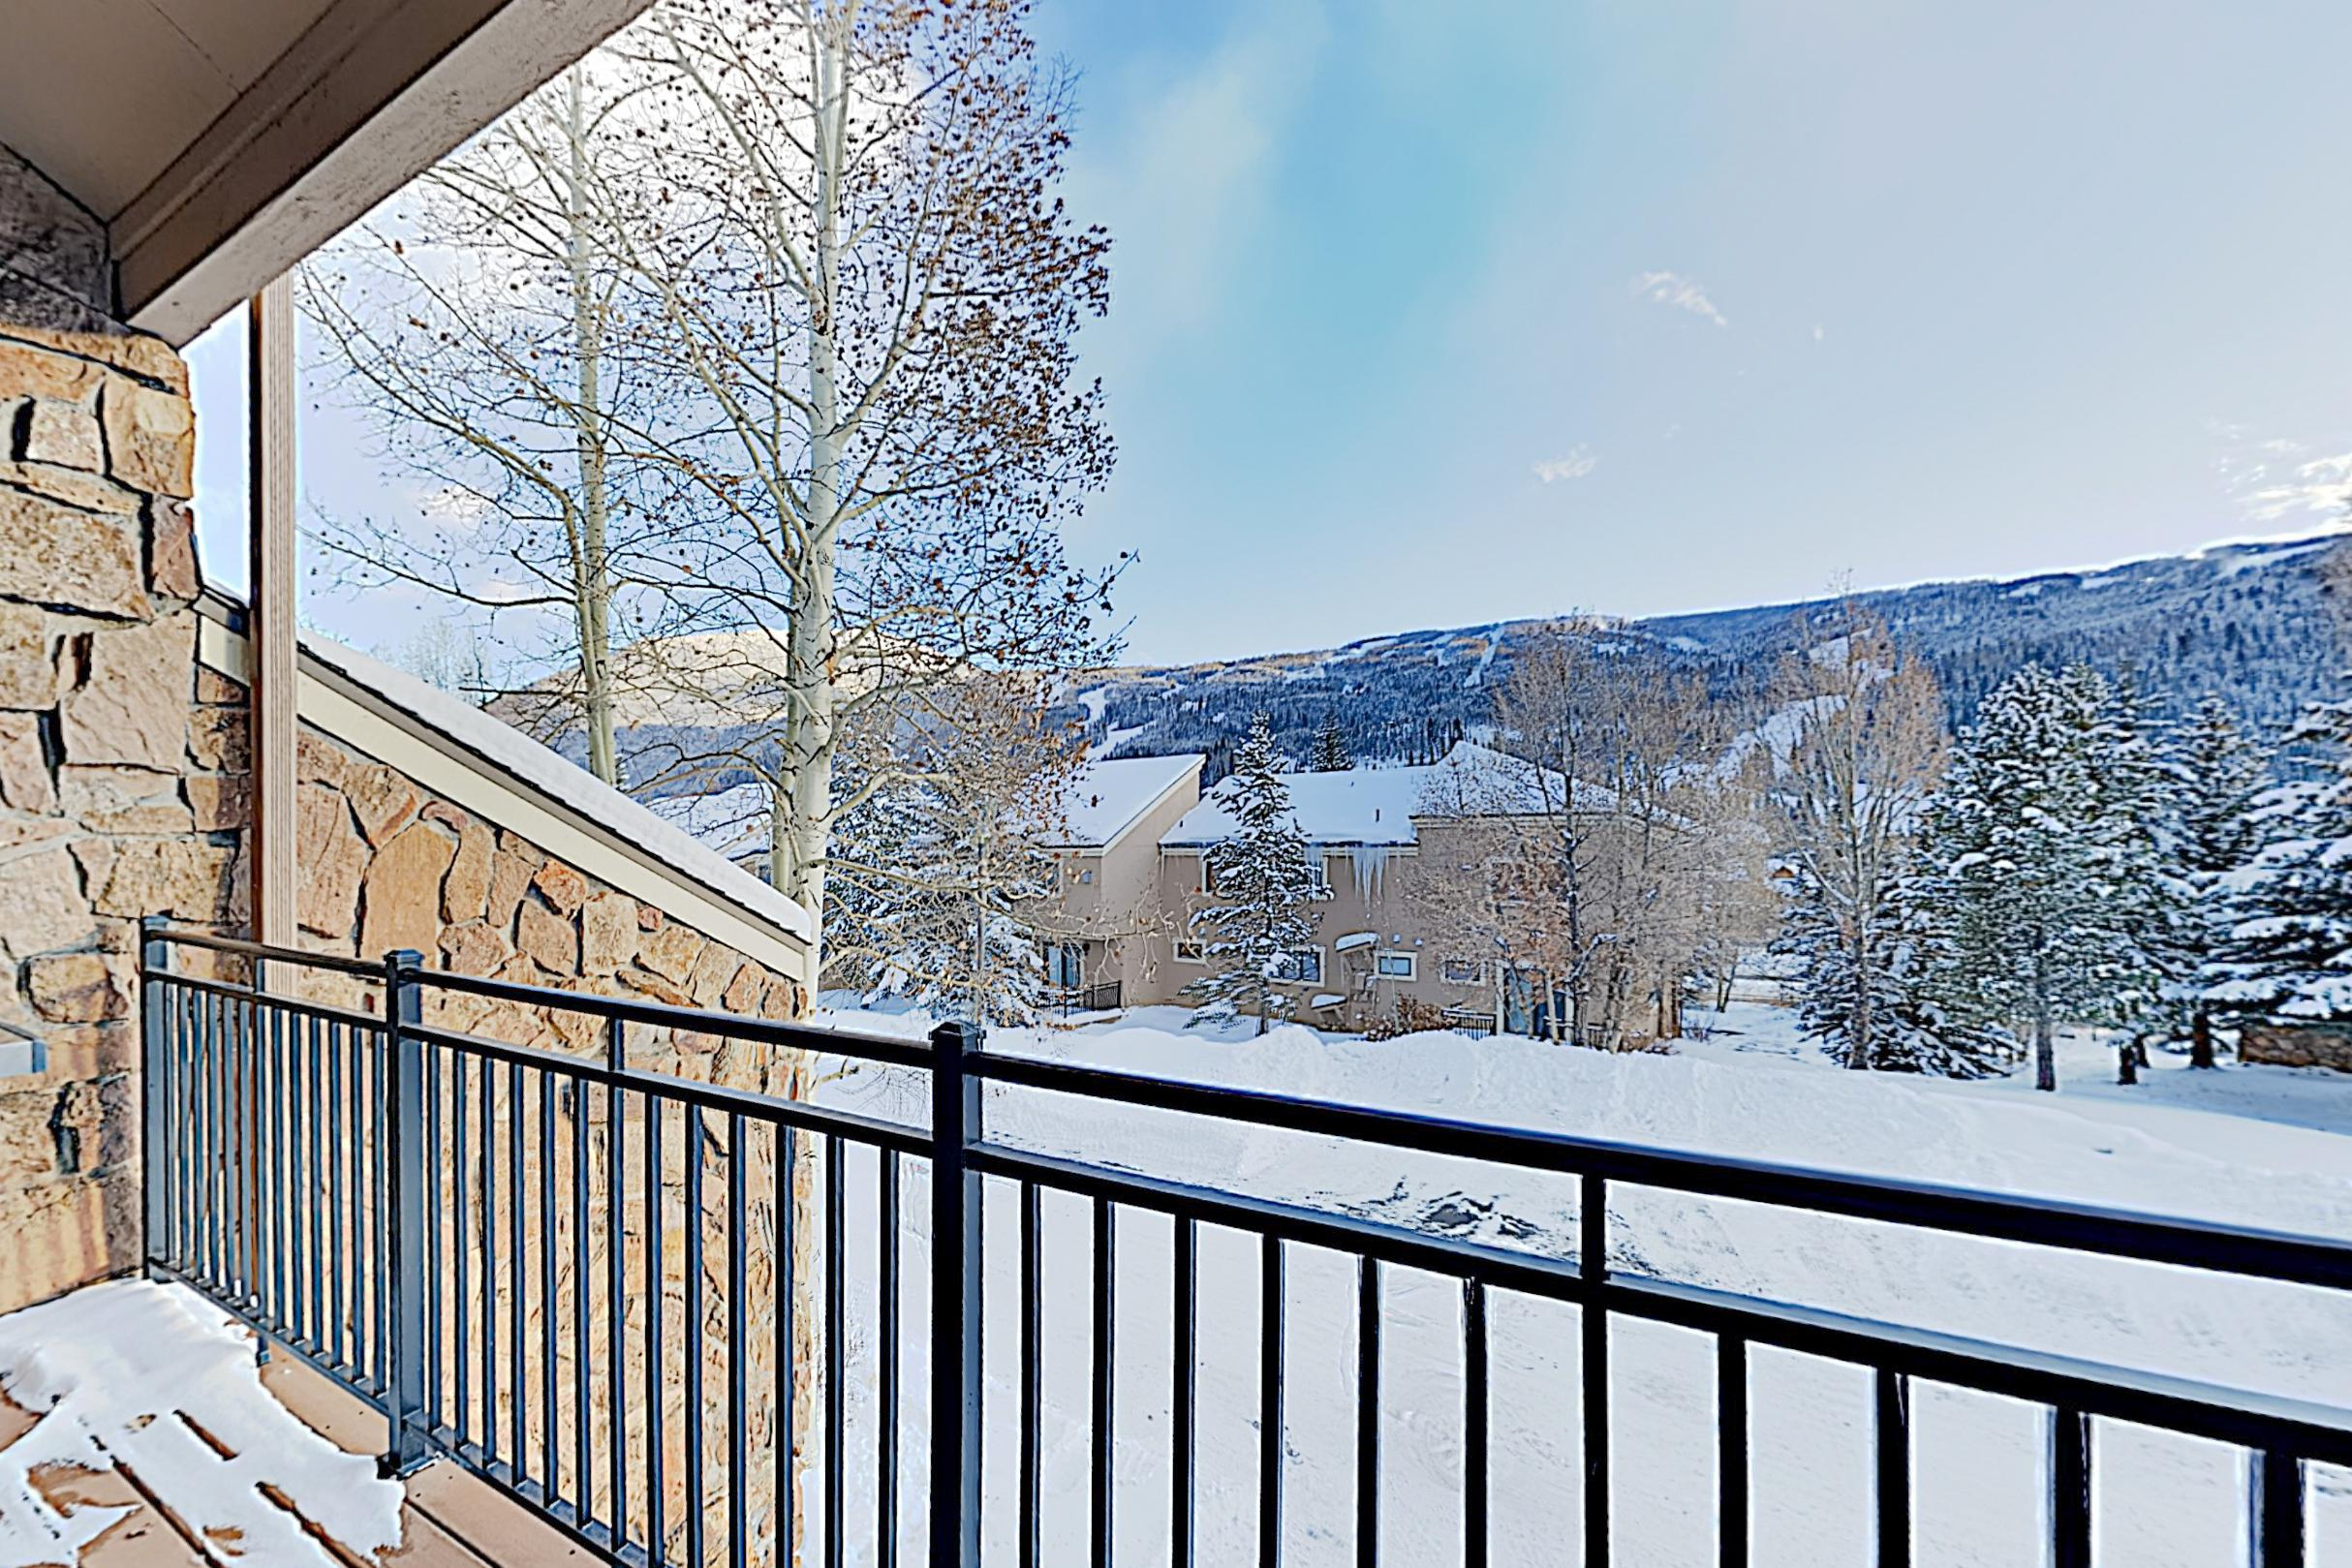 Take in the fresh air on your private mountain-view balcony.